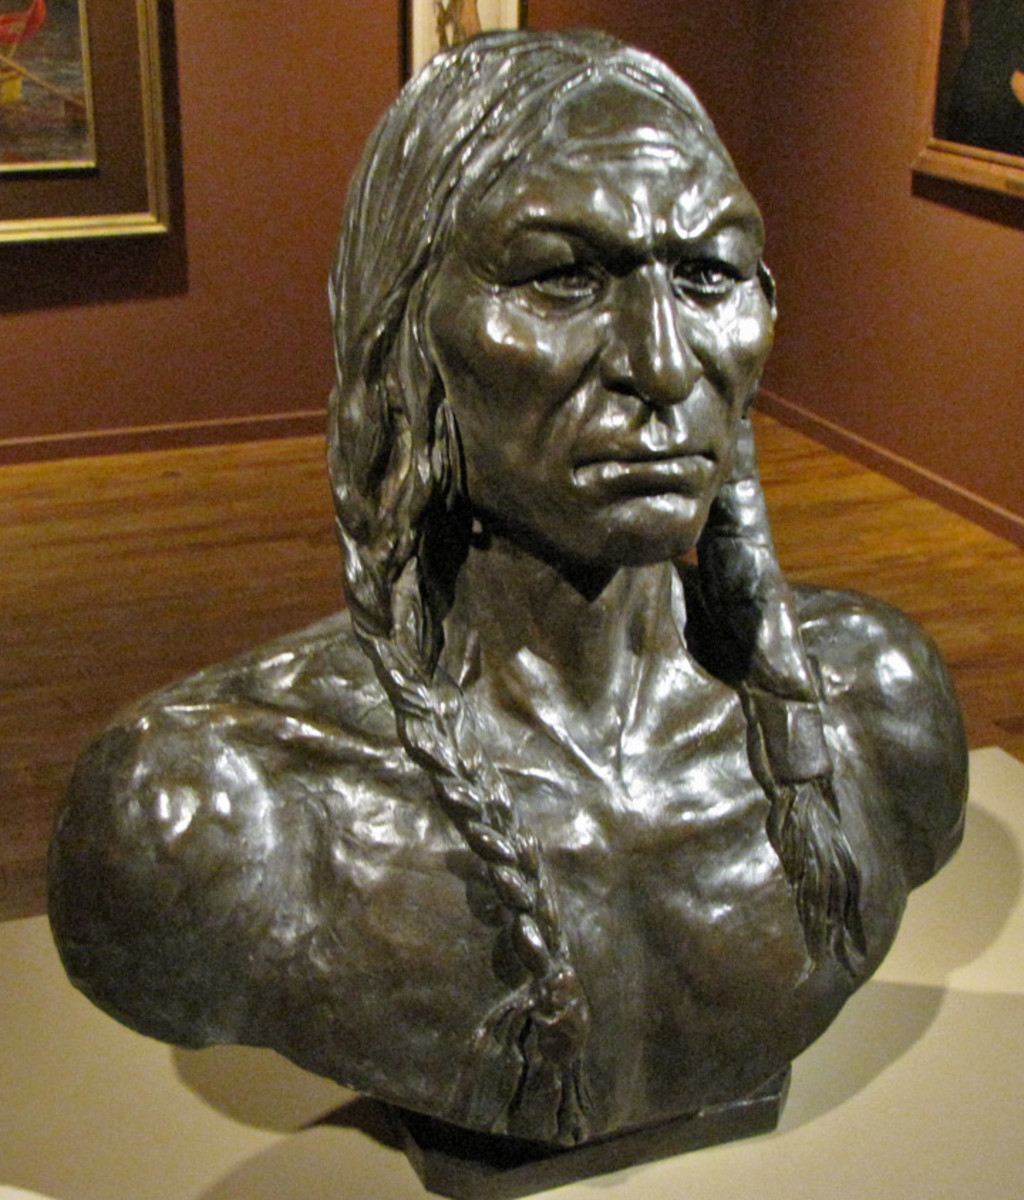 Western Bronze Sculptures found at the Gilcrease Museum